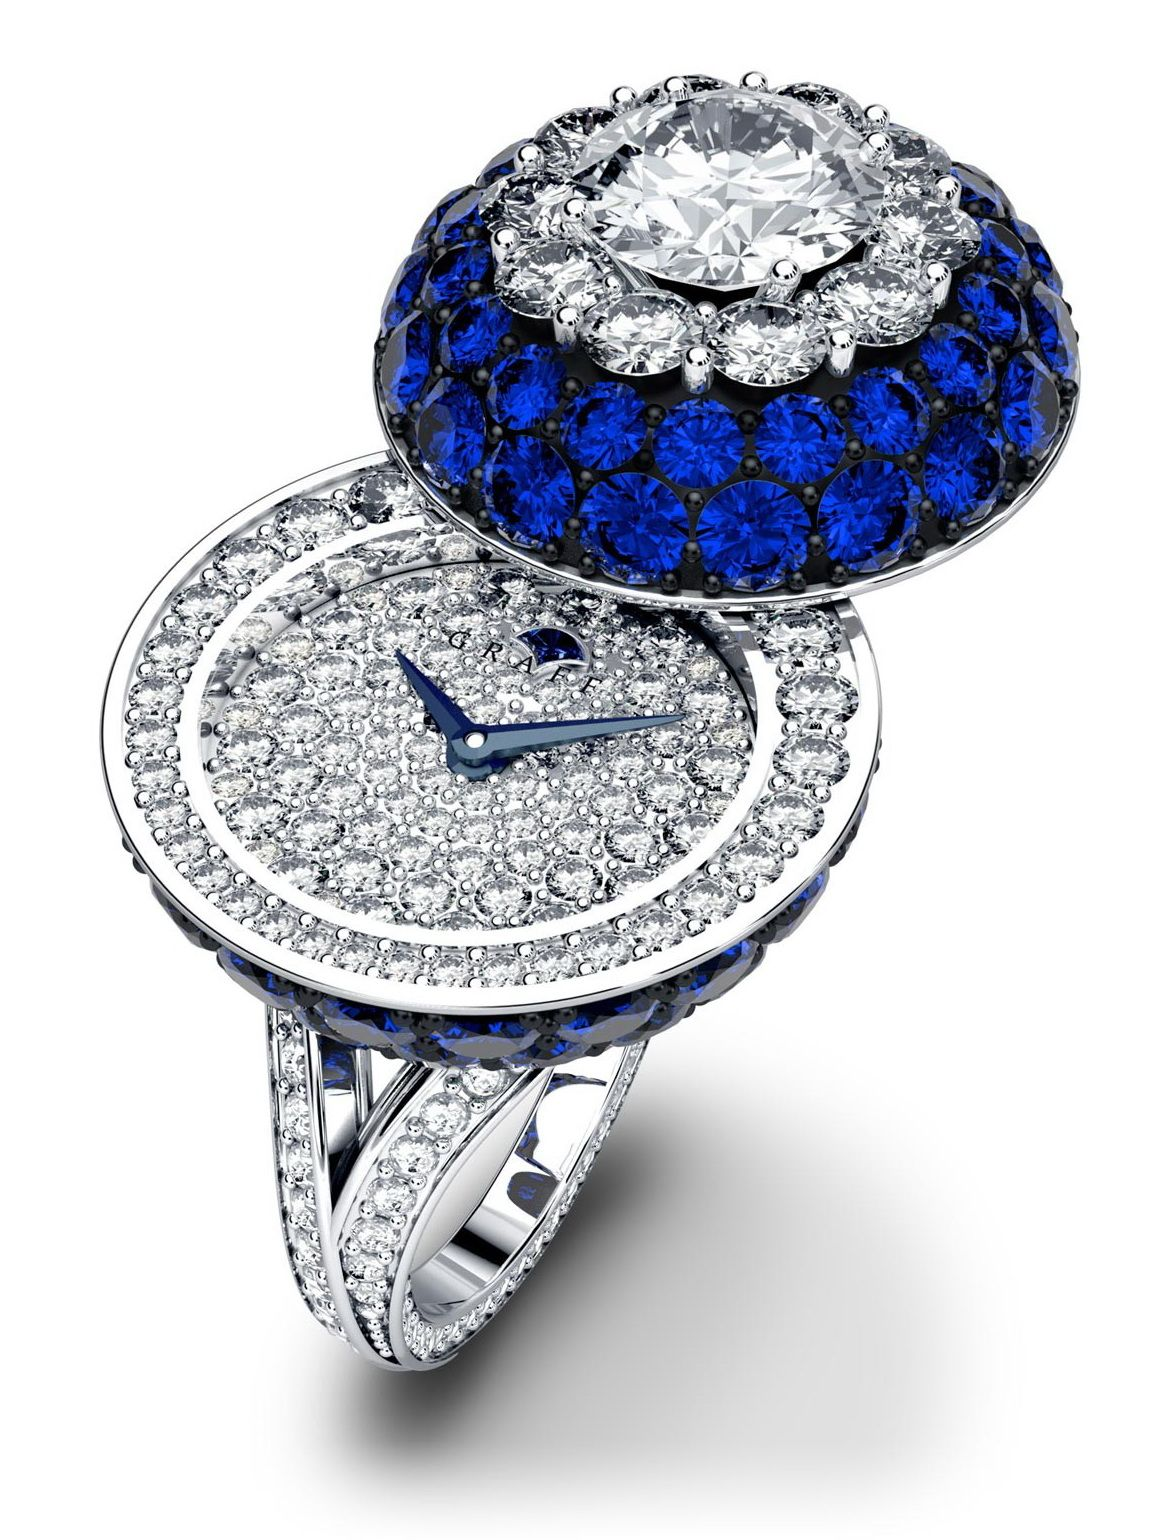 Graff Diamonds Sapphire Halo Secret Ring Watch Ring Watch Antique Watches Pendant Watches